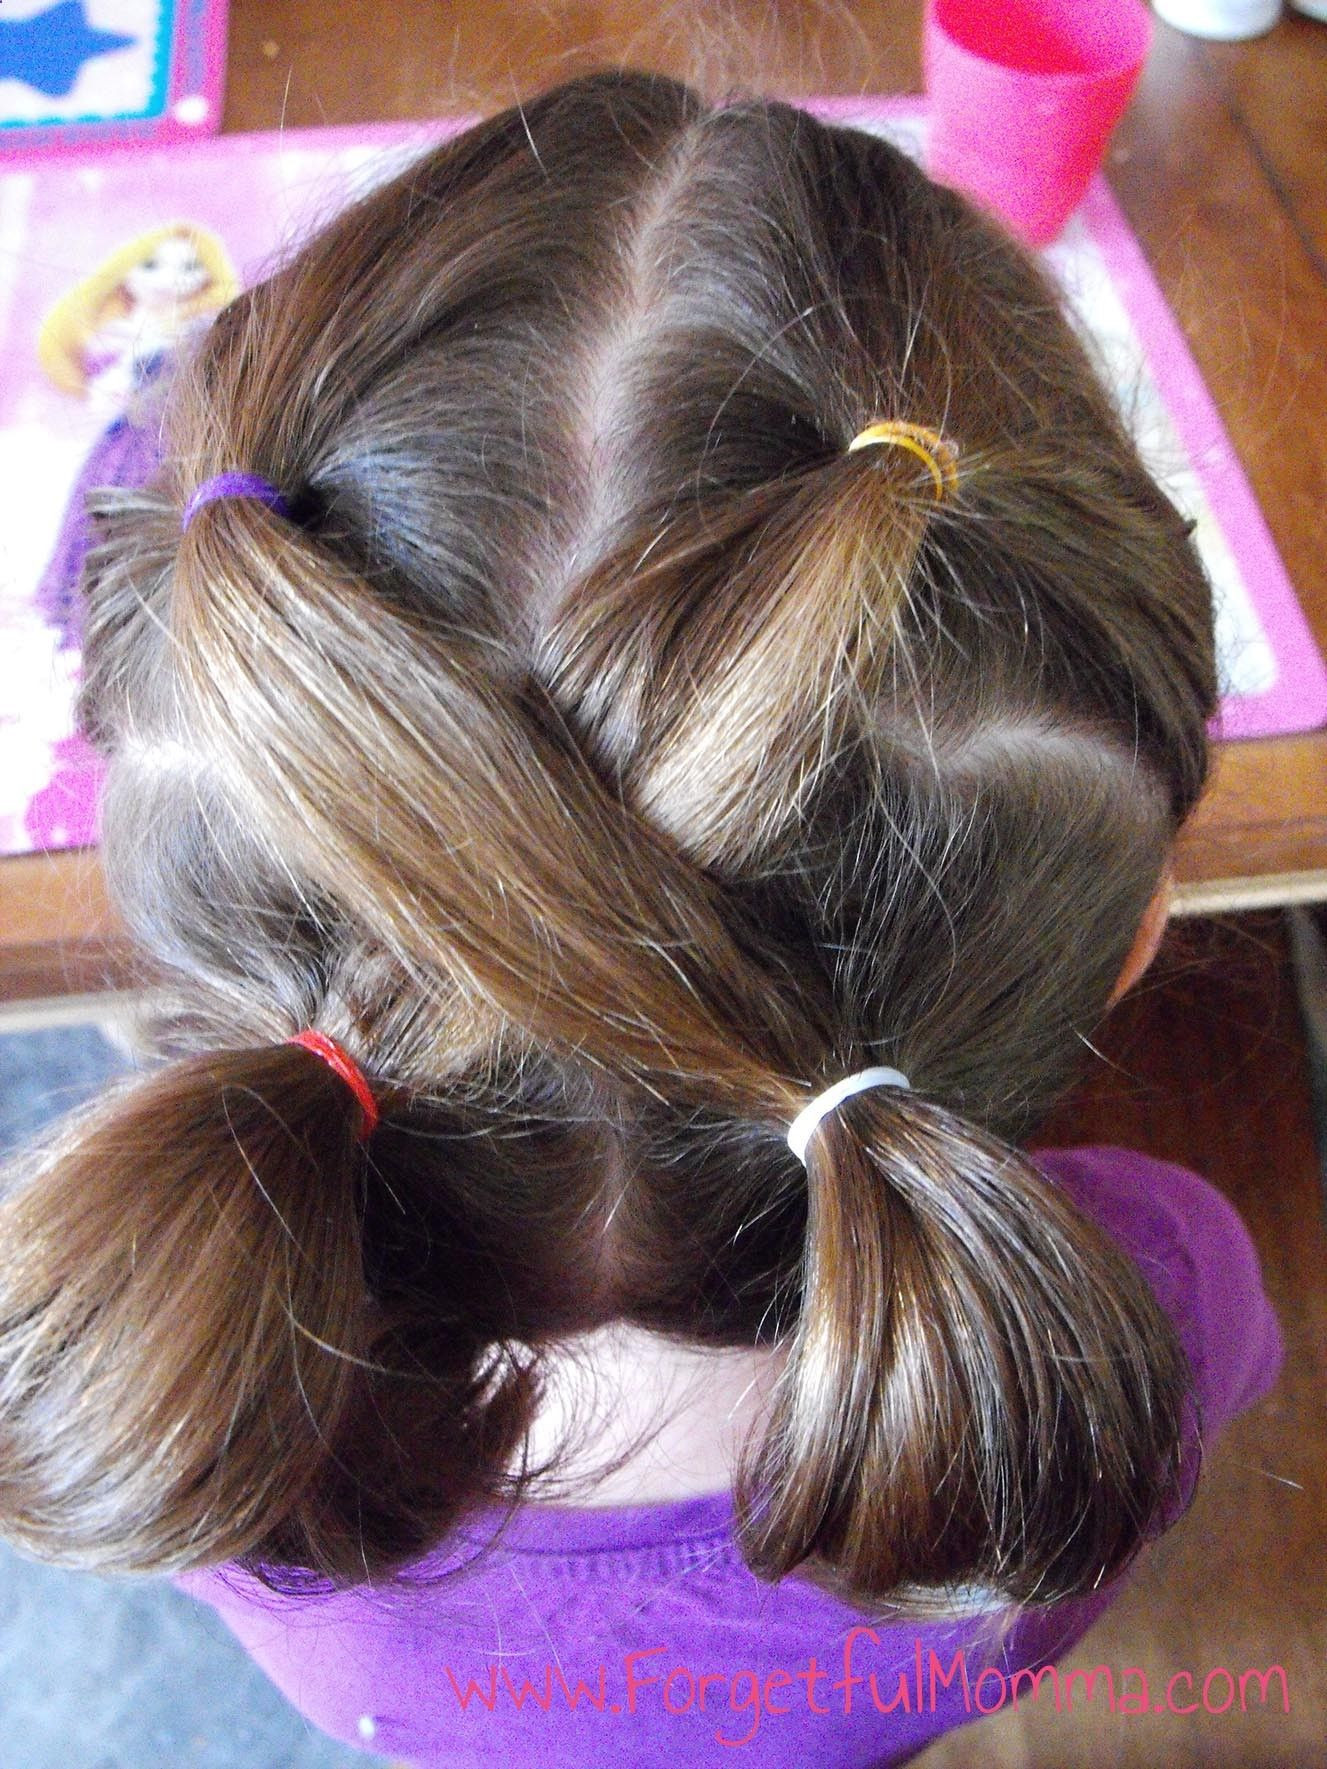 Best ideas about Girly Hairstyles For Kids . Save or Pin little girls easy hairstyles for school Google Search Now.